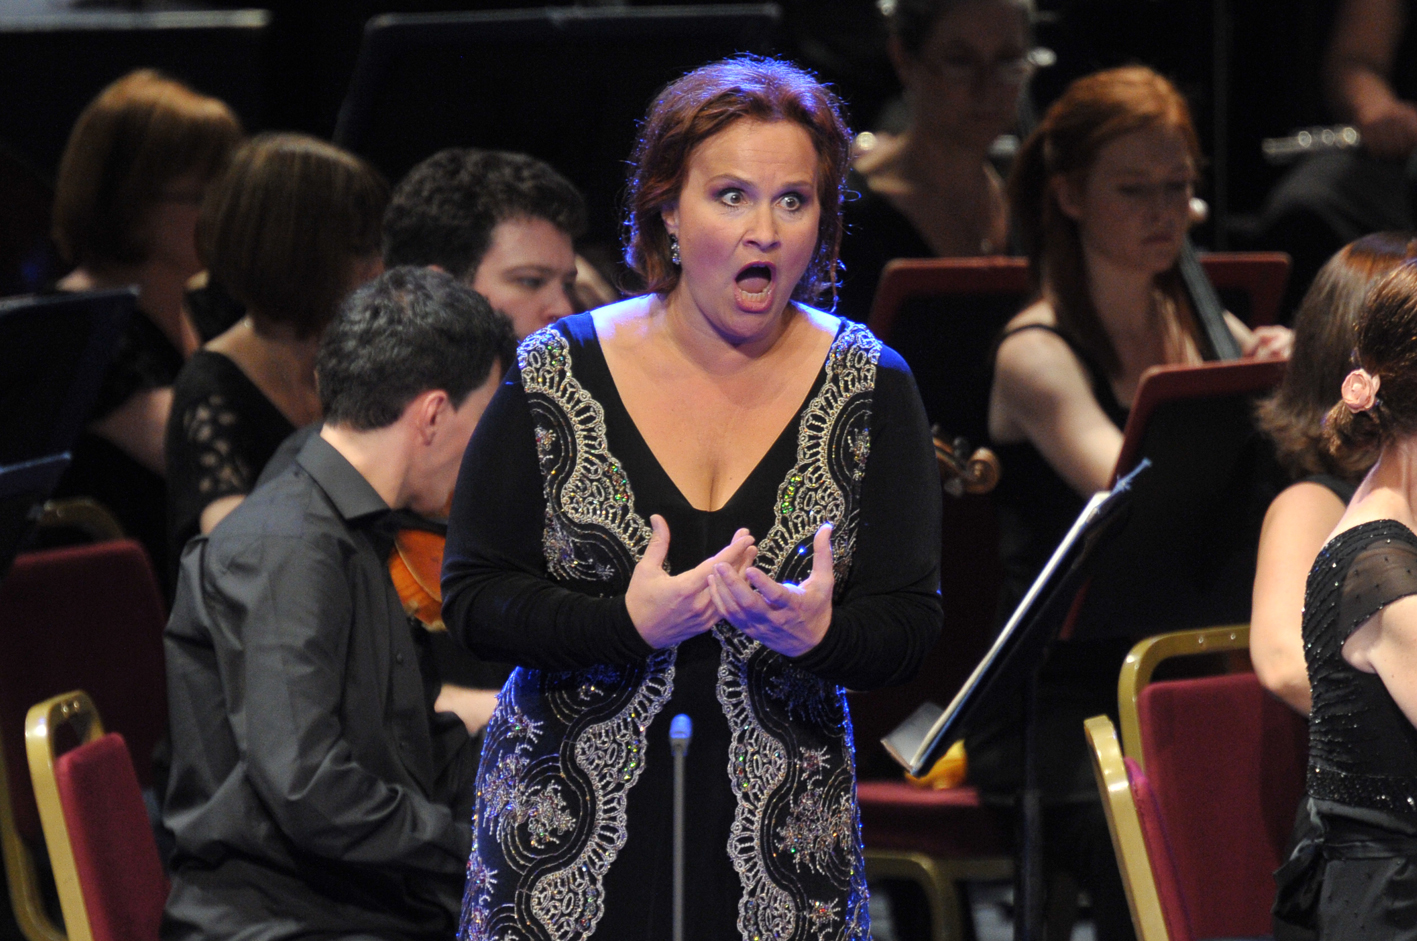 Katarina Dalayman at the 2013 Proms by Chris Christodoulou